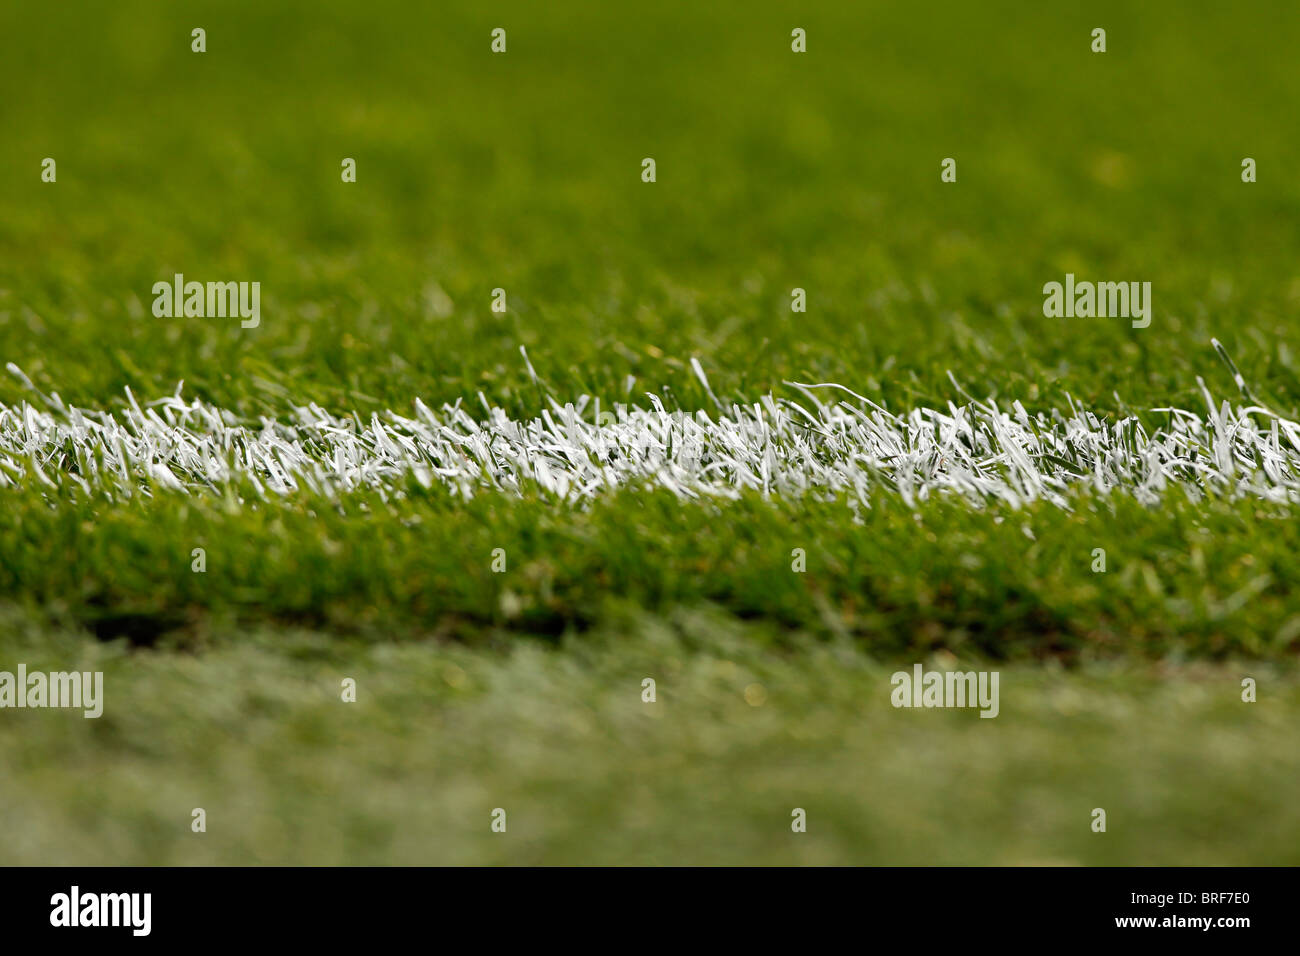 A white painted line on a Football pitch - Stock Image